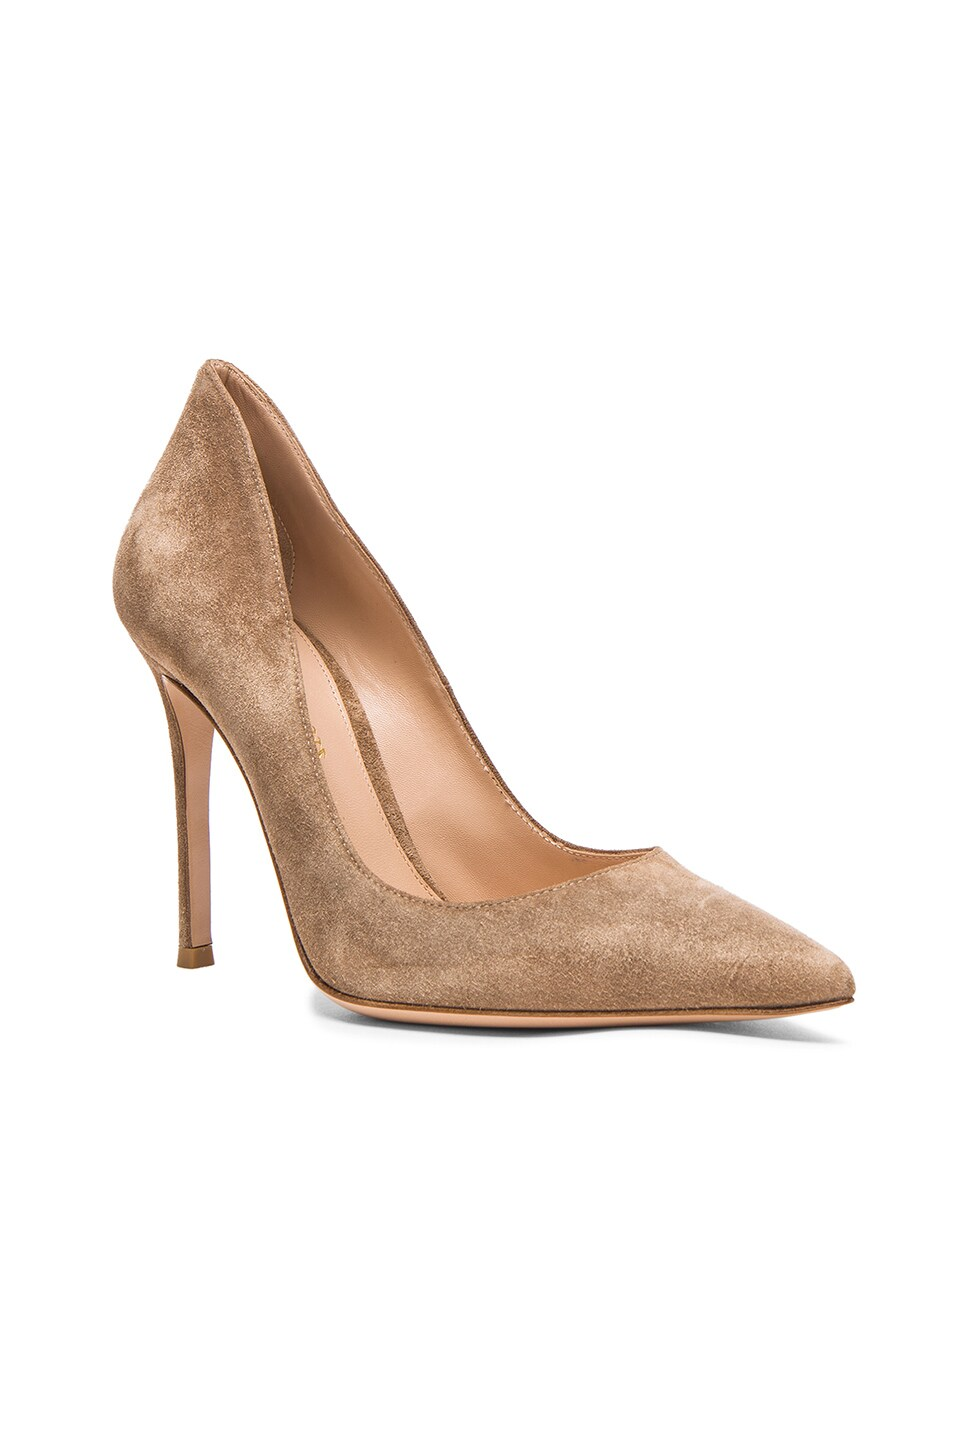 Image 2 of Gianvito Rossi Suede Gianvito Pumps in Bisque